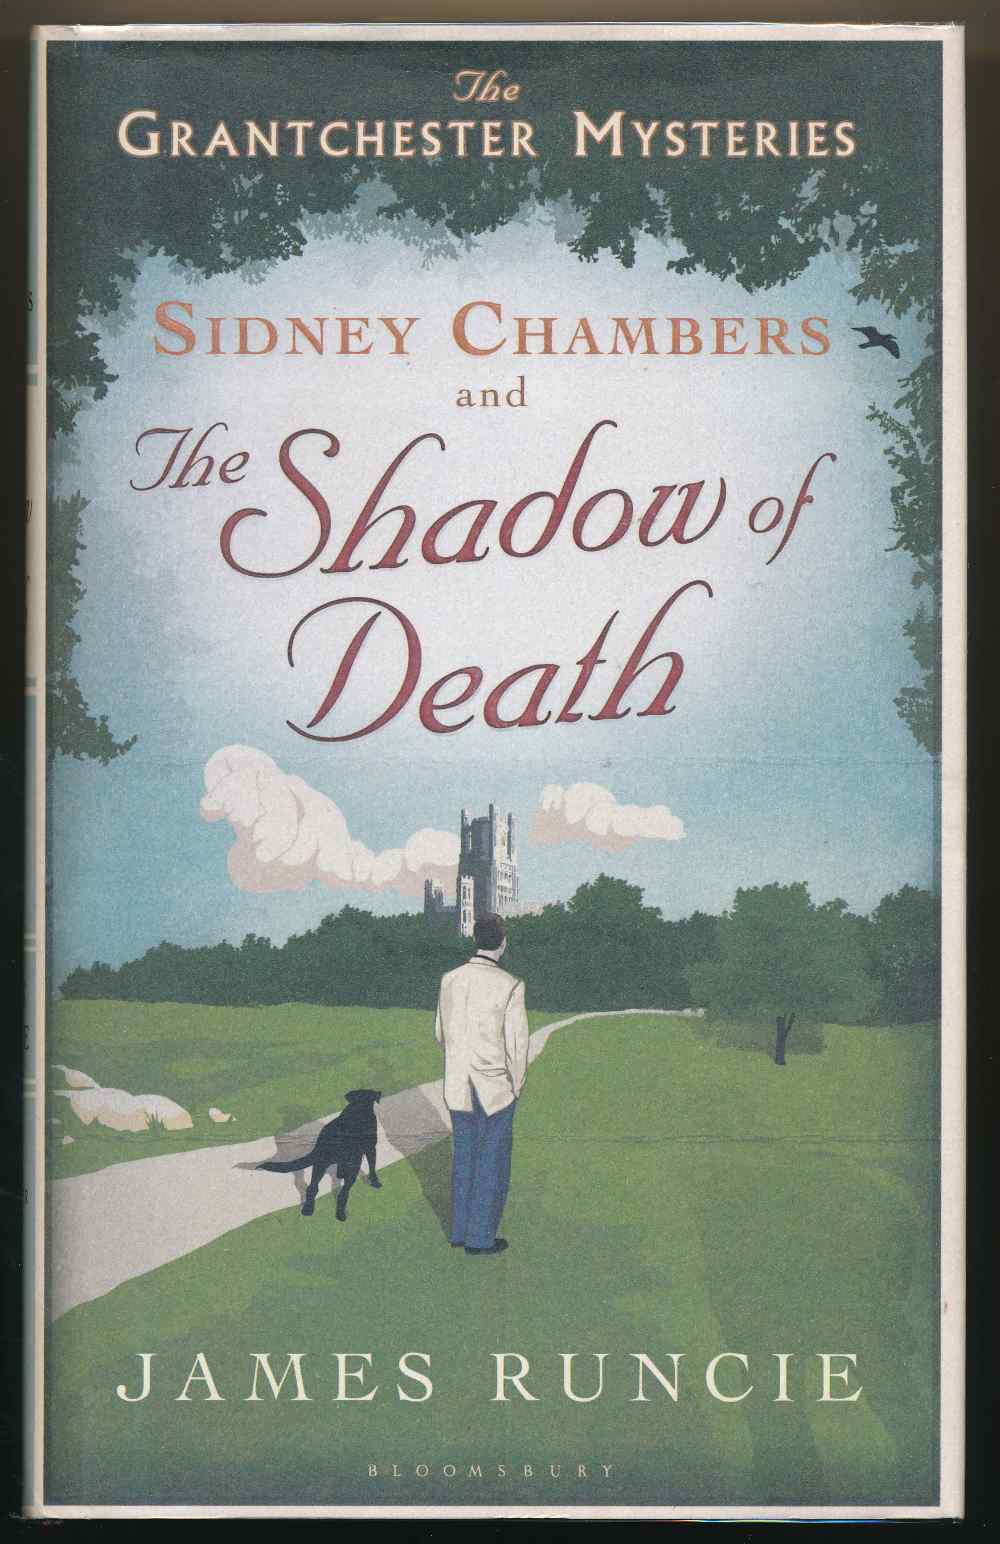 The Granchester mysteries: Sidney Chambers and the shadow of death